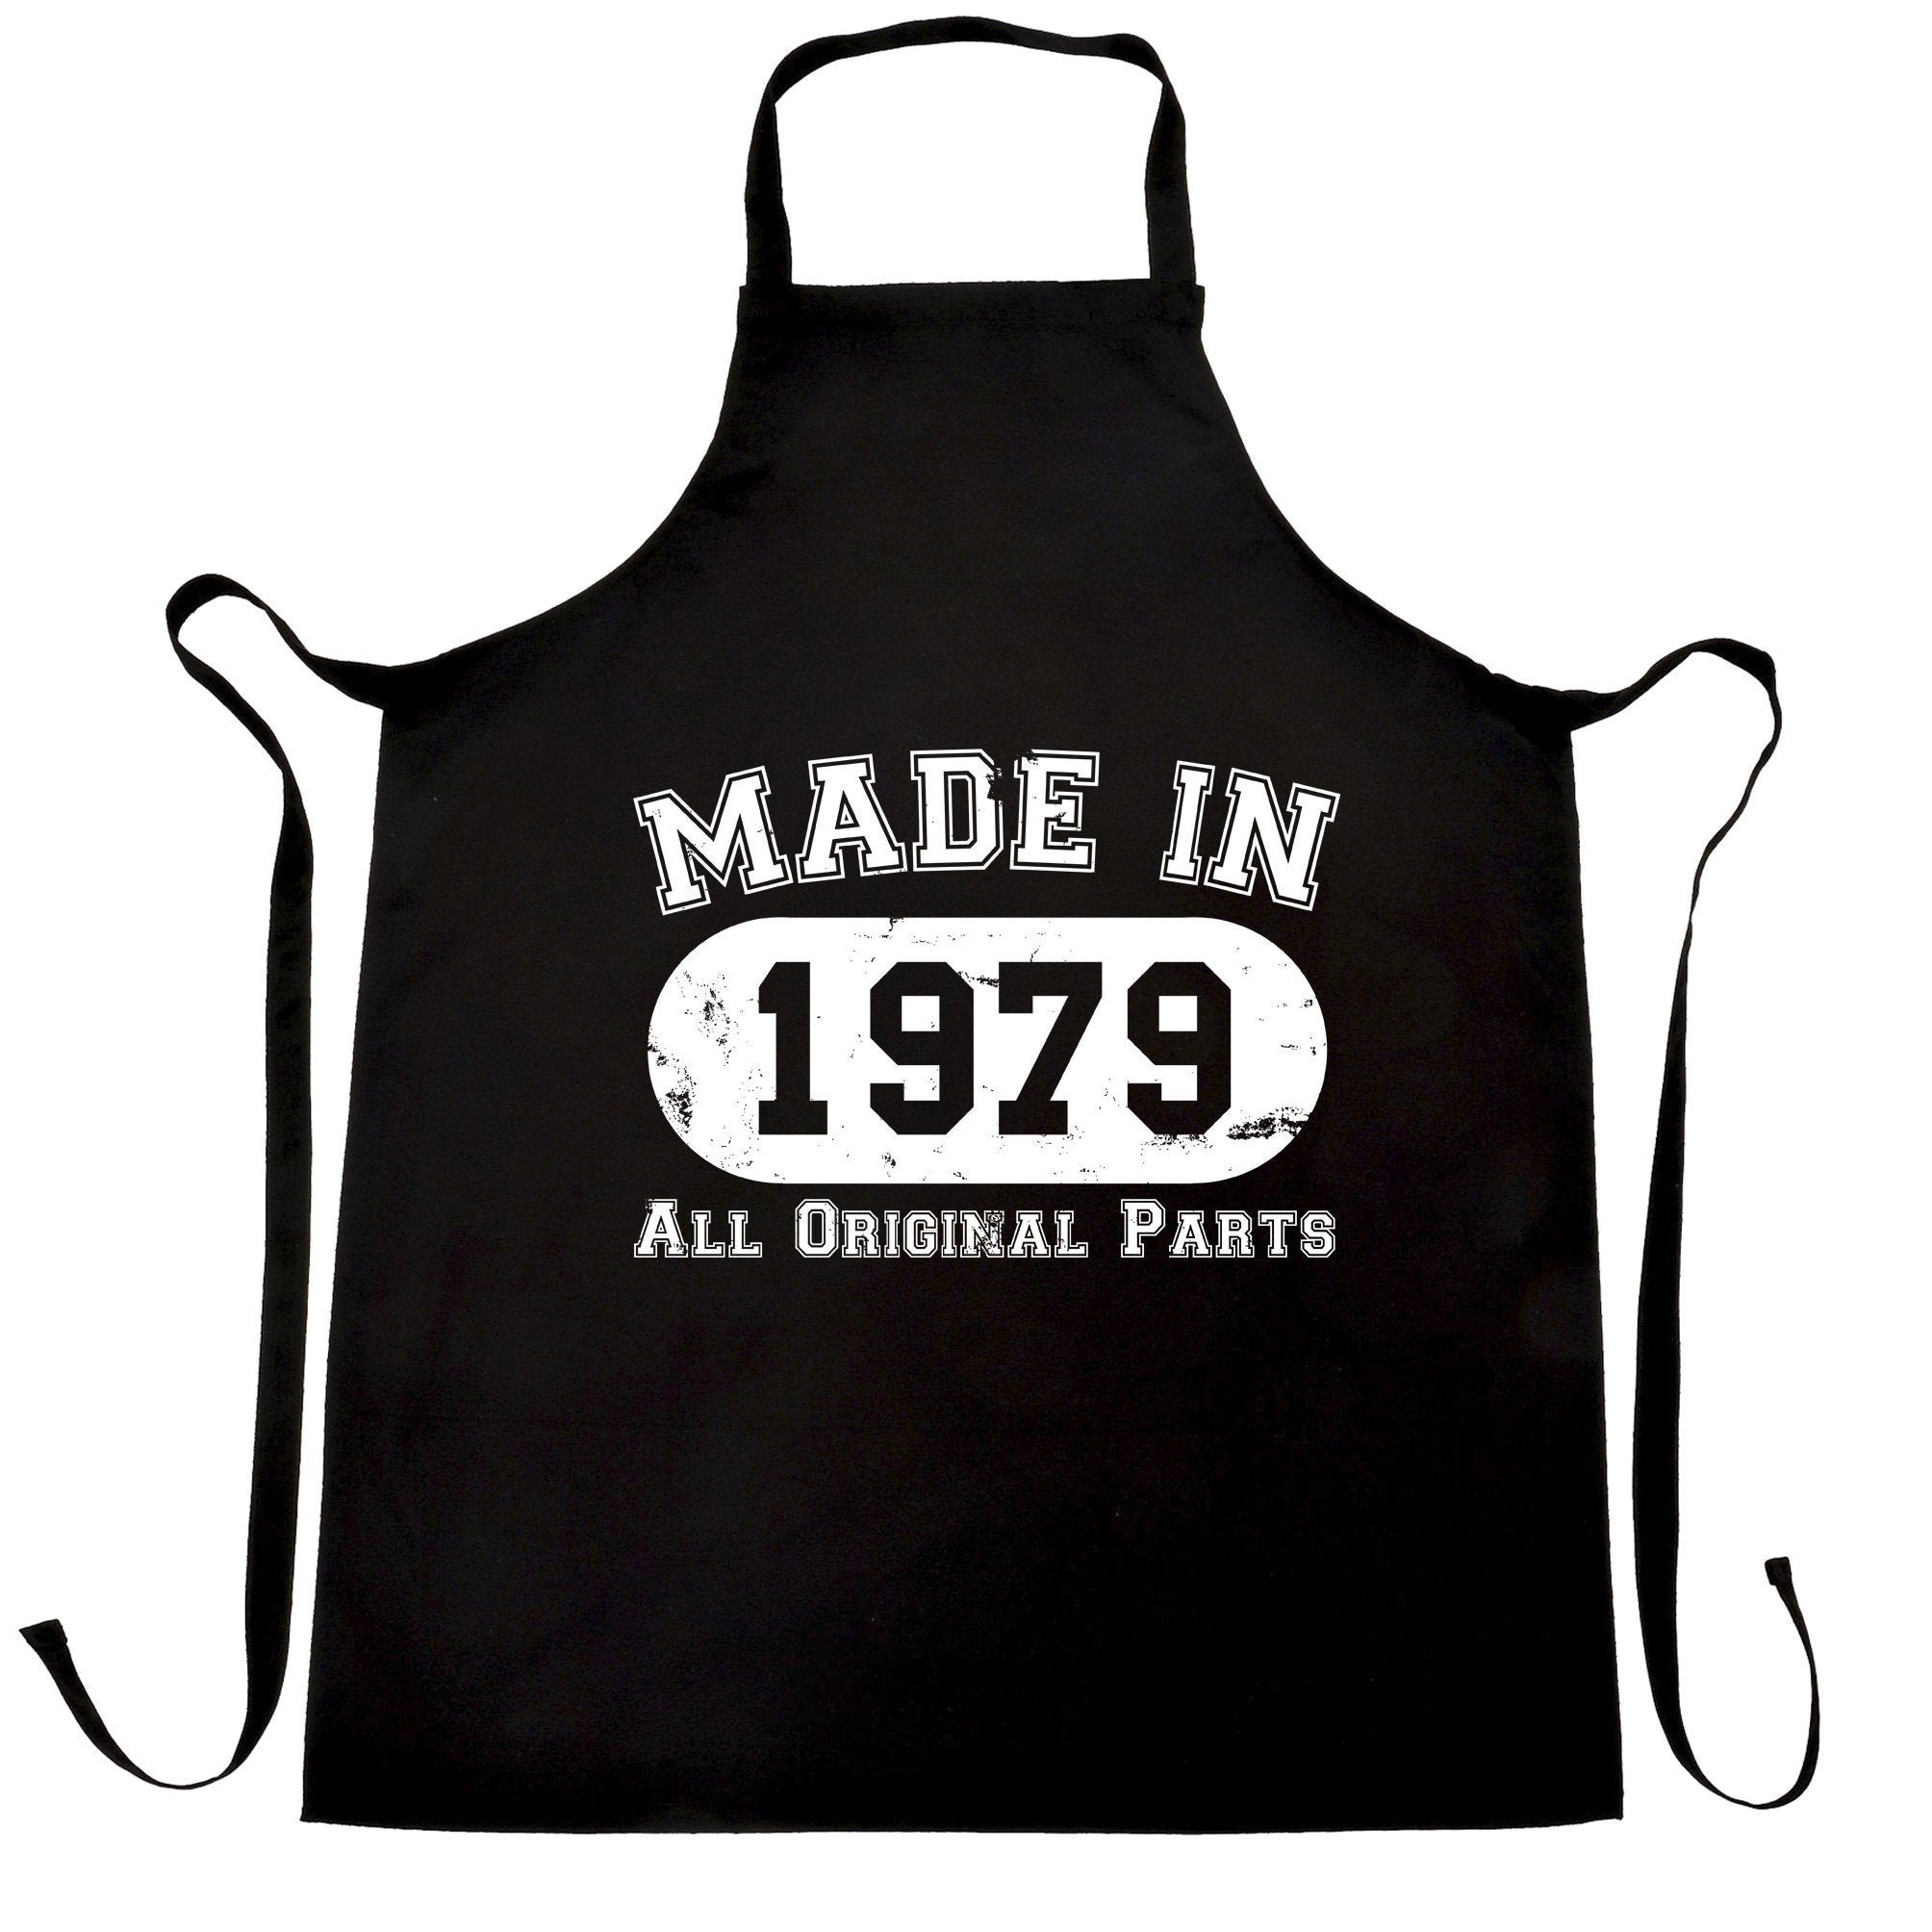 Made in 1979 All Original Parts Apron [Distressed]